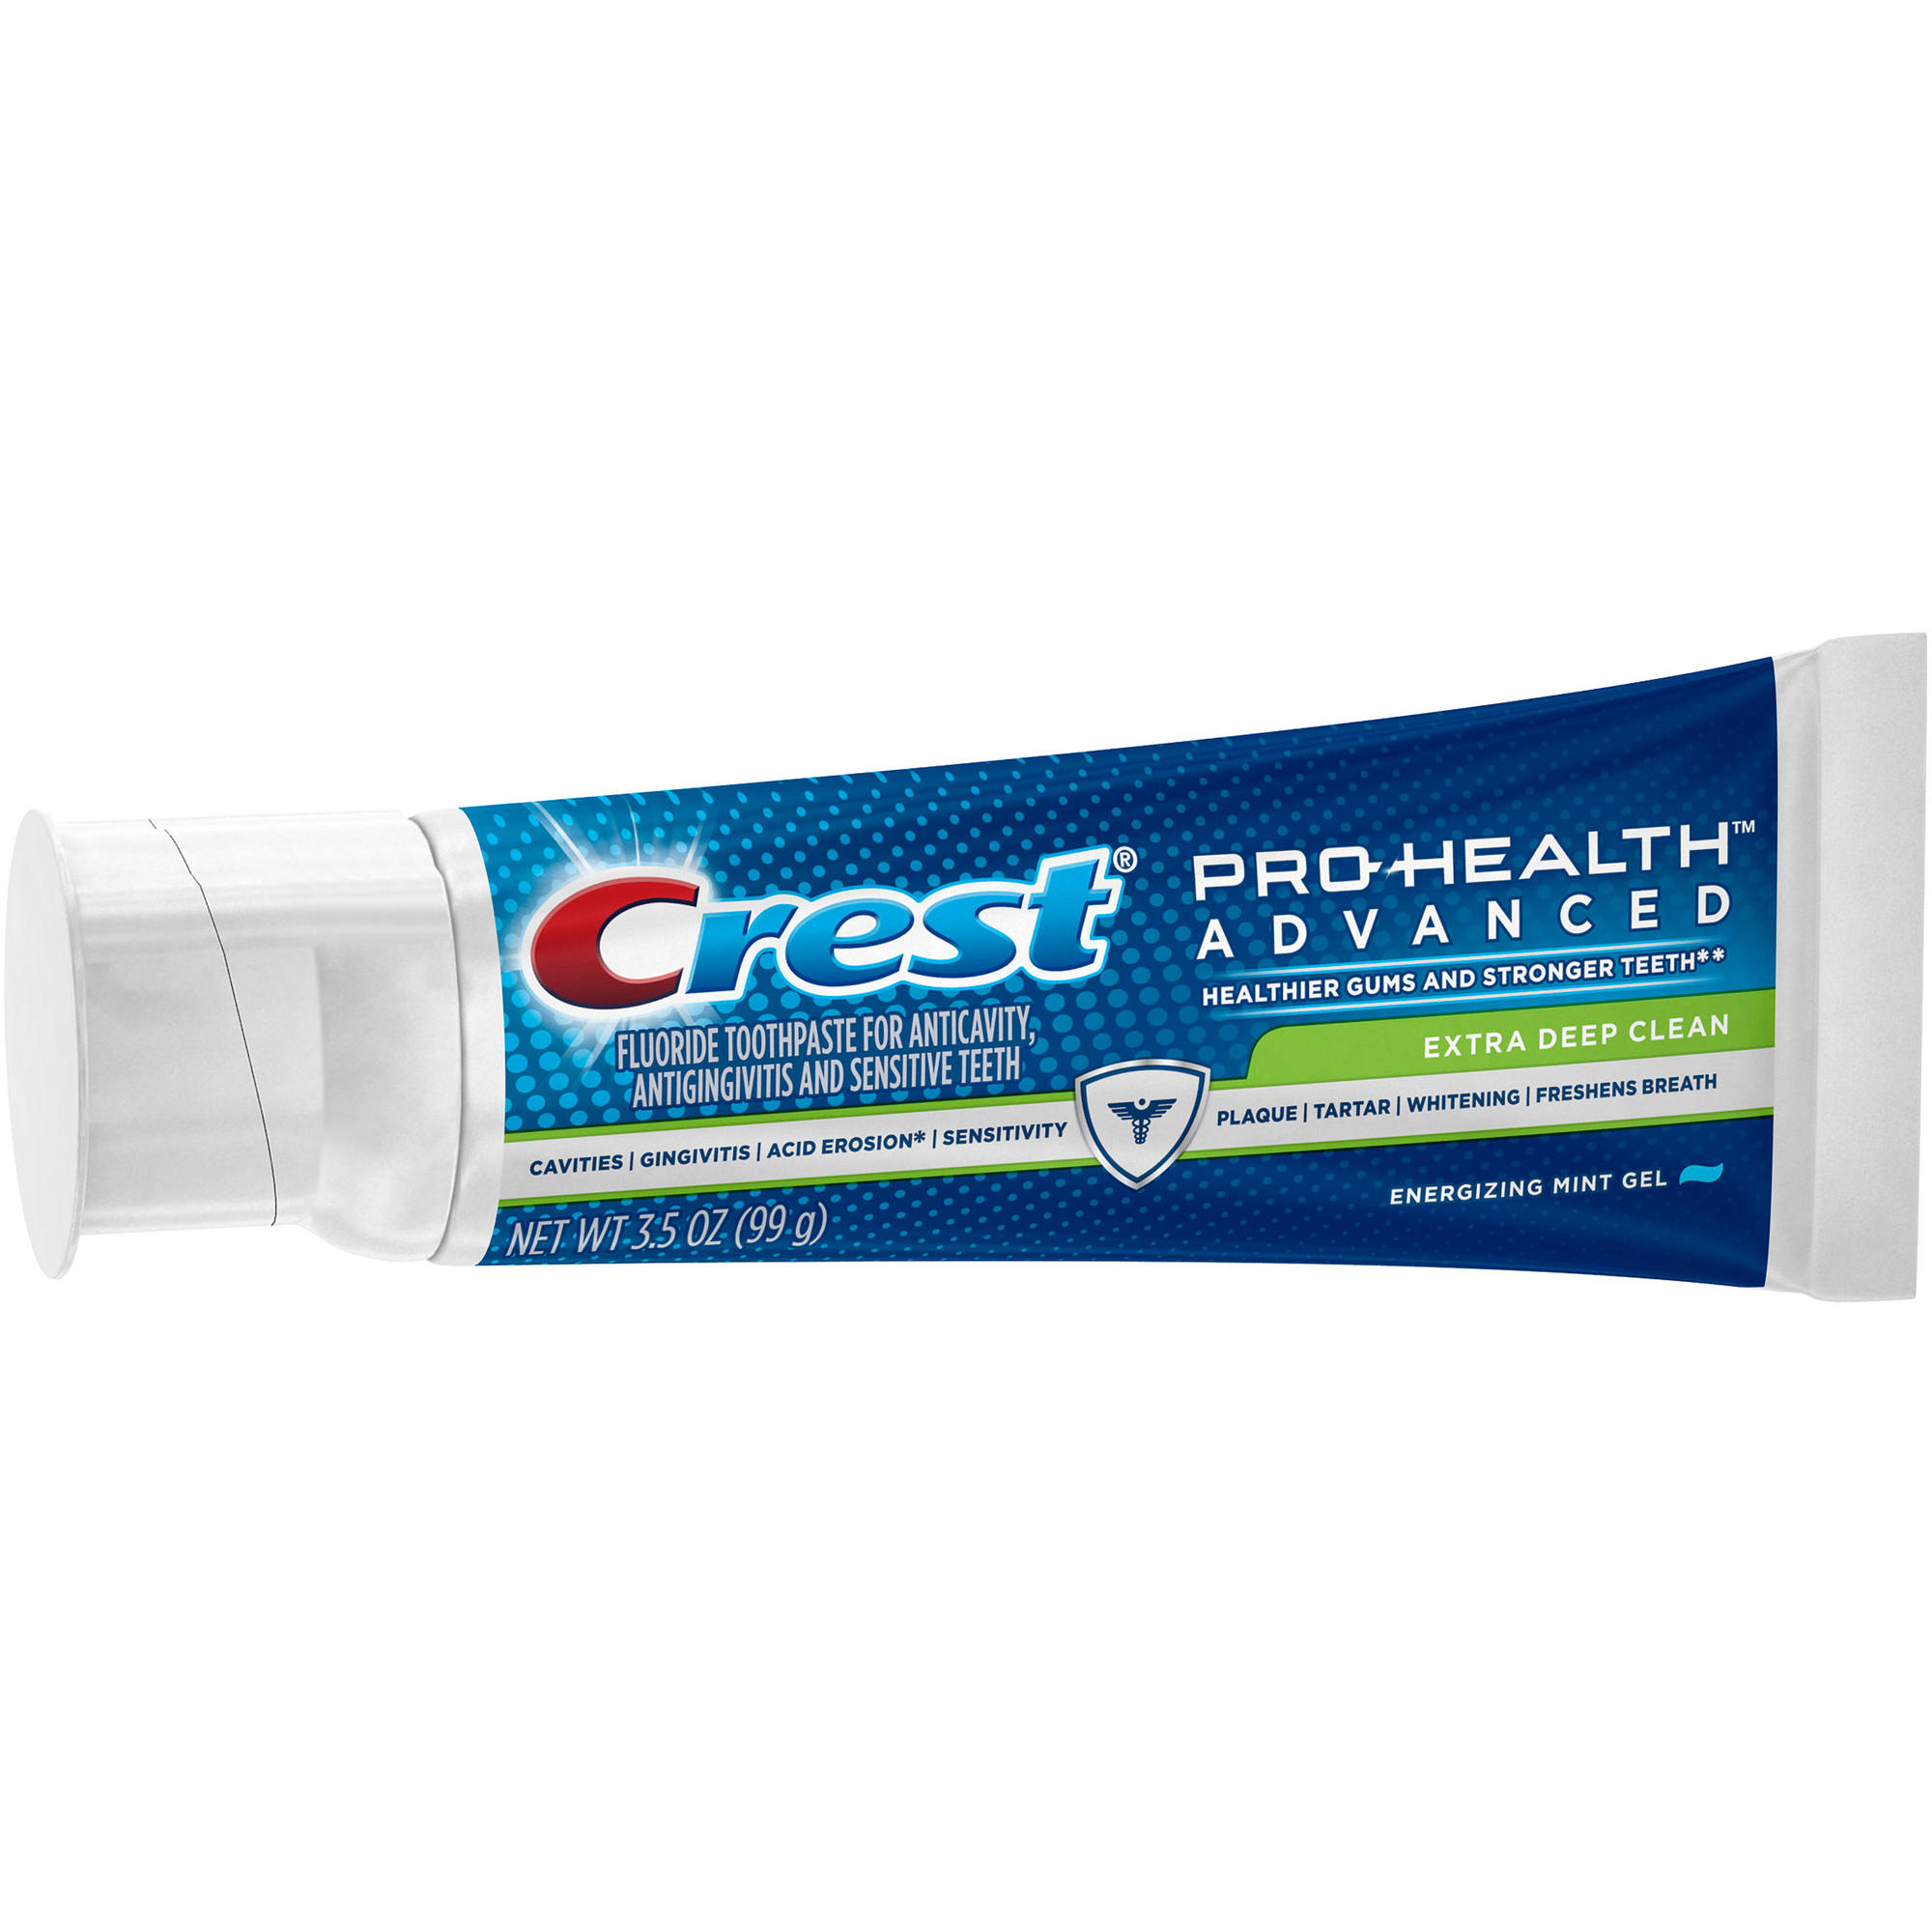 Crest Pro-Health Advanced Extra Deep Clean Energizing Mint Gel Extra Deep Clean Toothpaste, 3.5 oz